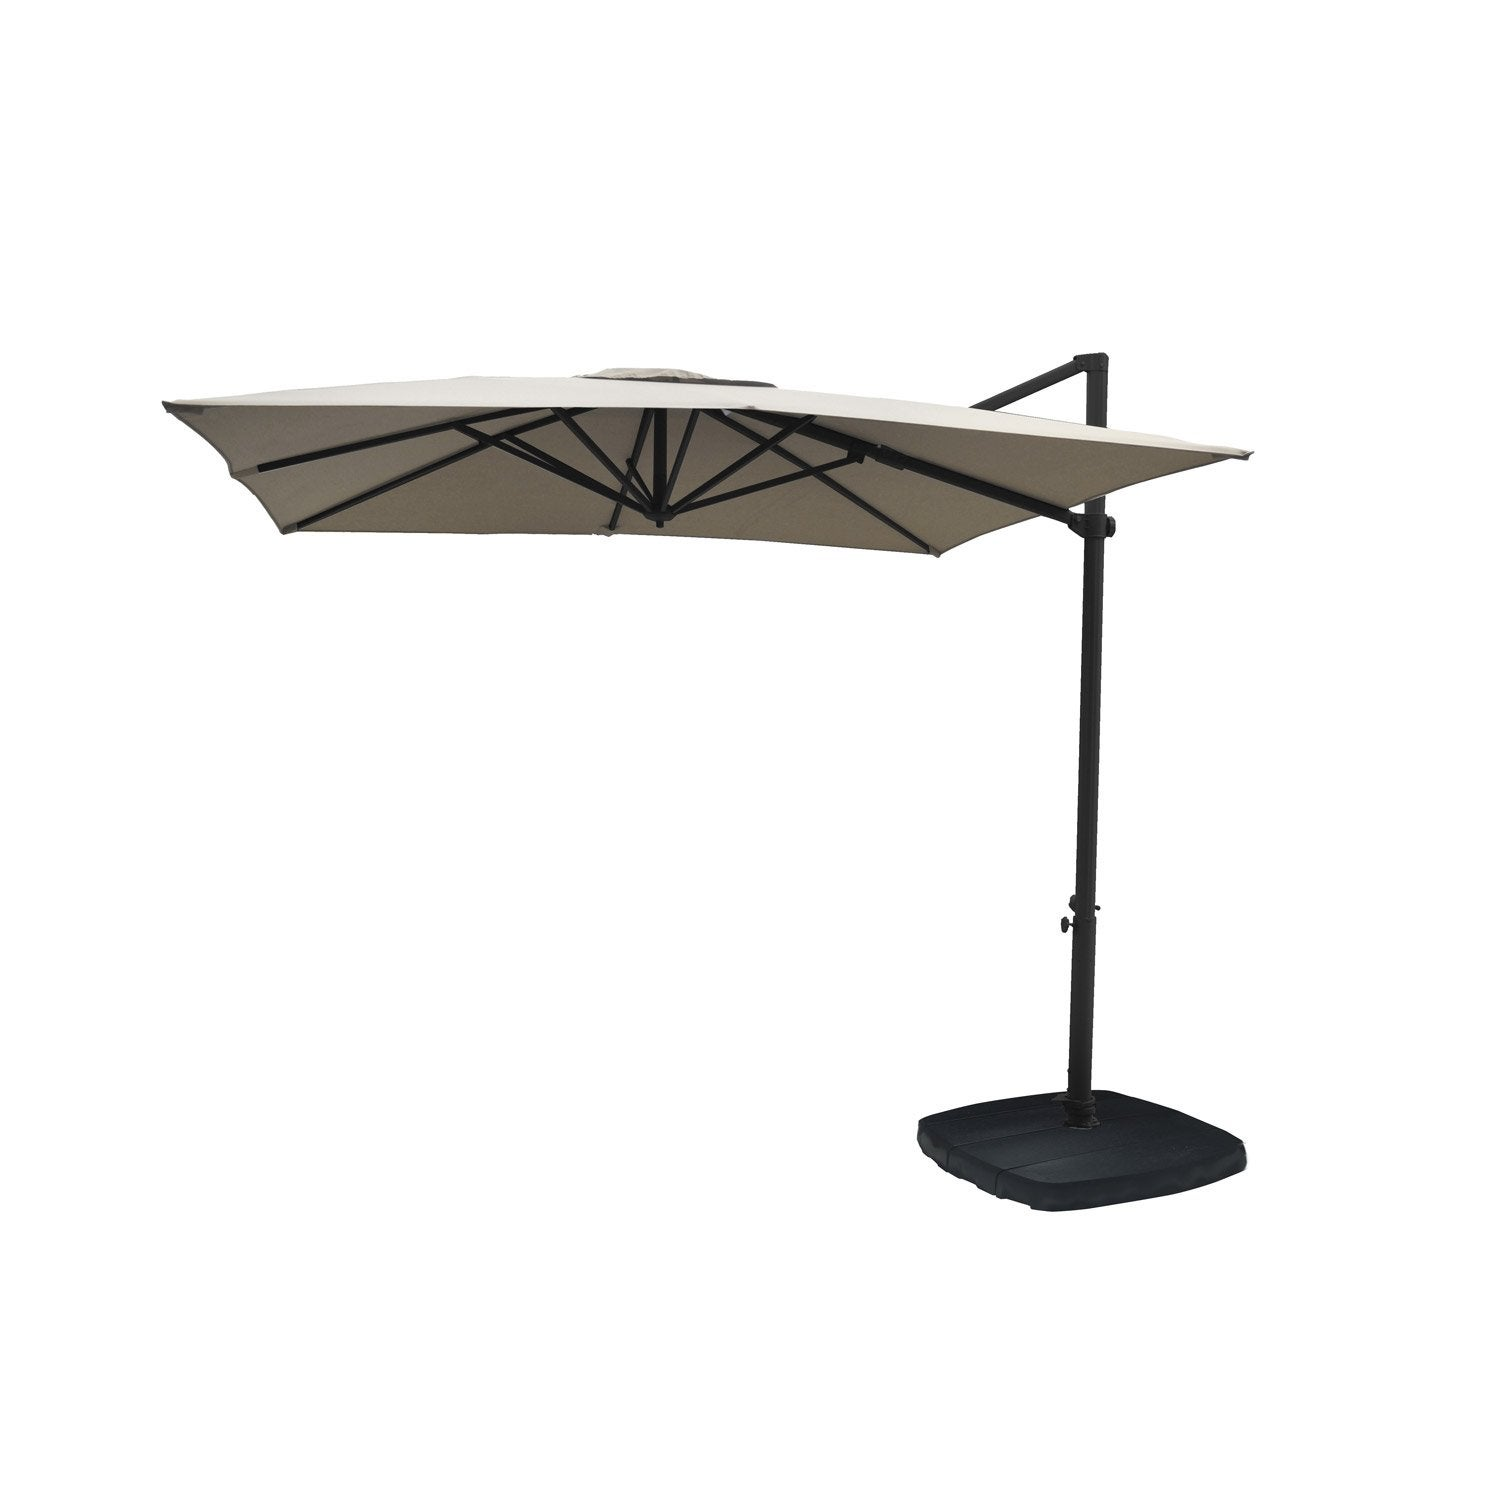 sch ma r gulation plancher chauffant parasol d port. Black Bedroom Furniture Sets. Home Design Ideas